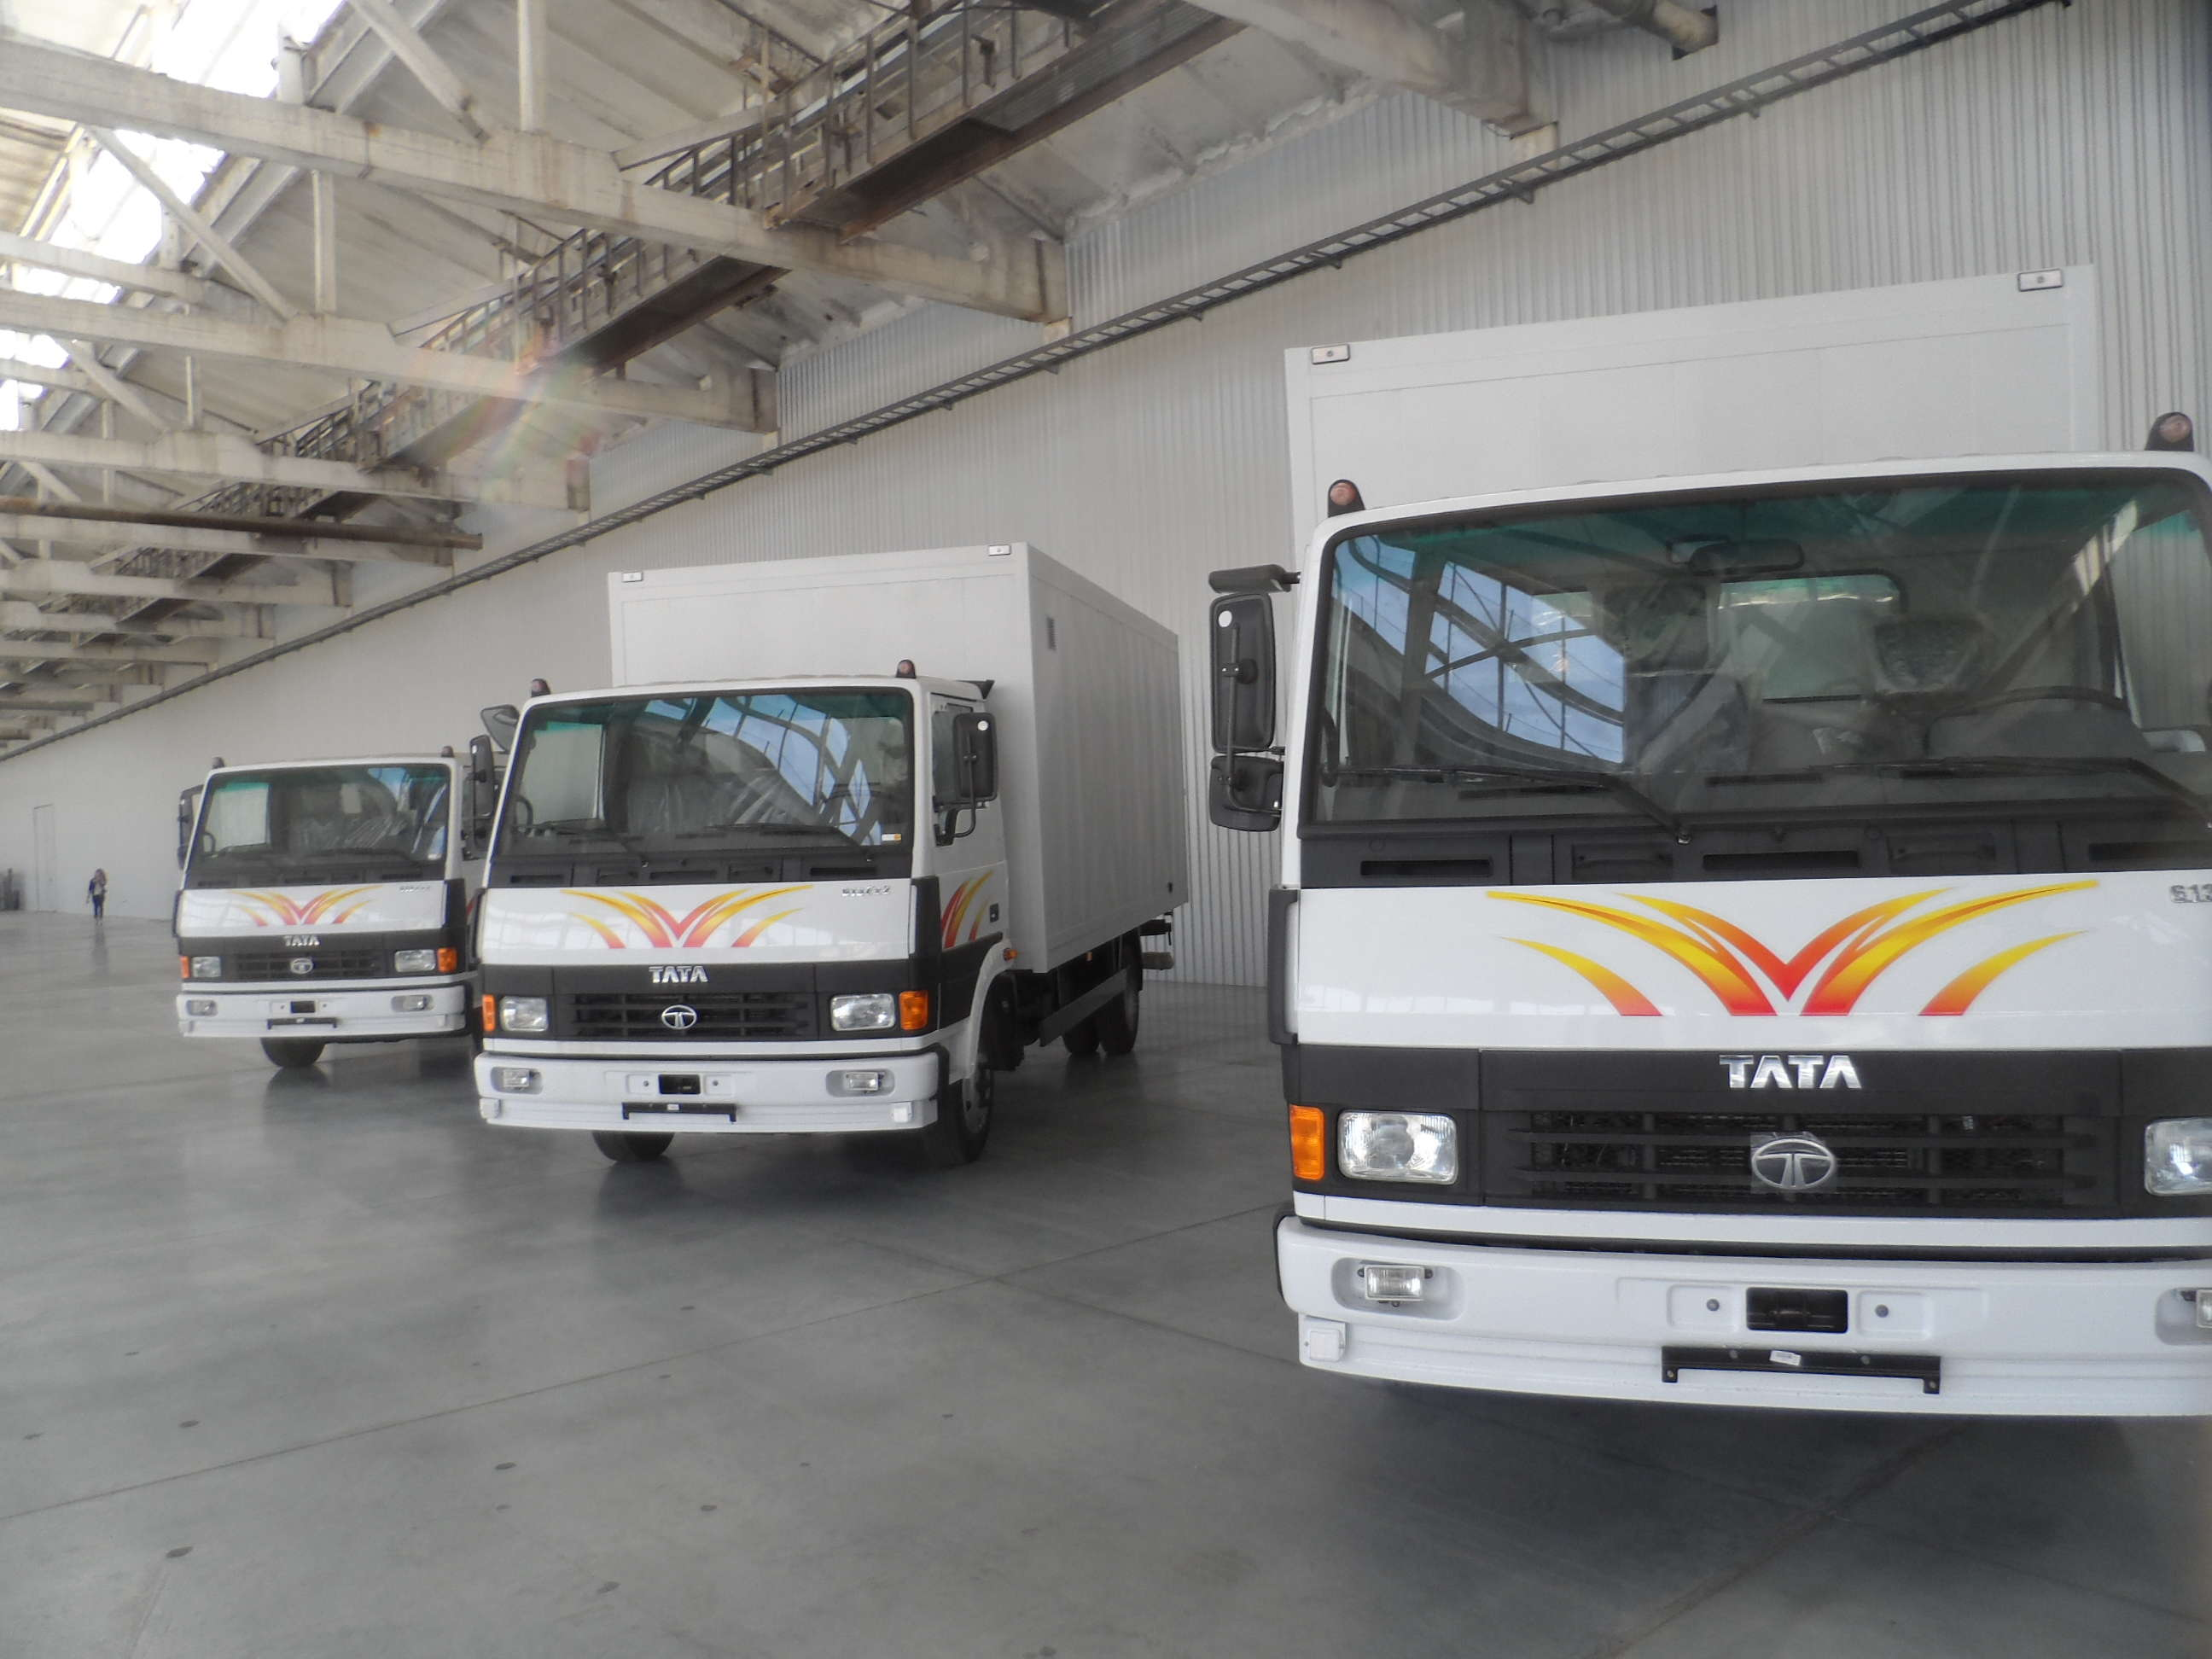 According to sources, in a team of 128 Dronas' (associates) in one of its agencies in its commercial vehicle business unit, the company has terminated services of 110 of these.